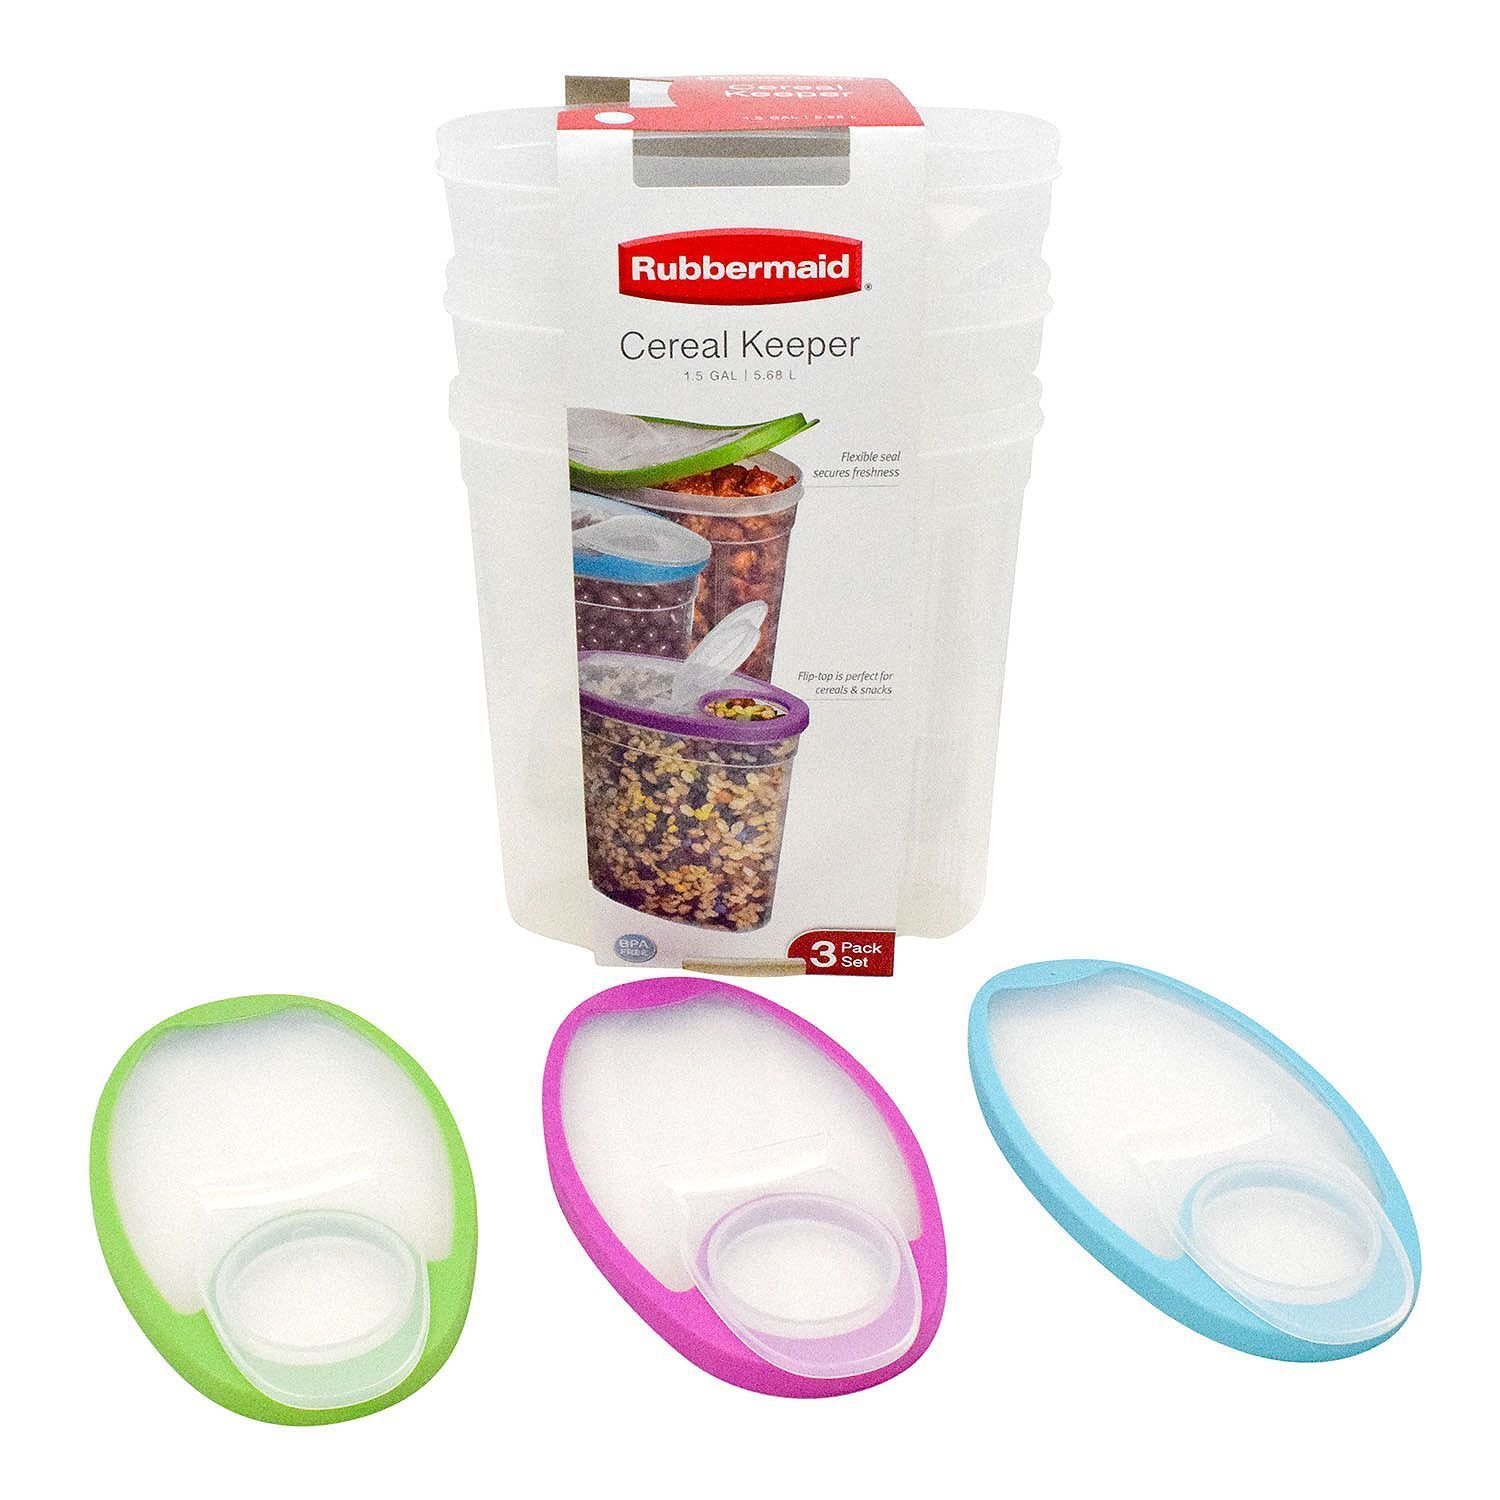 New 3 Pack 1.5 Gallon Rubbermaid Cereal Keeper Food Storage Plastic Container s 1